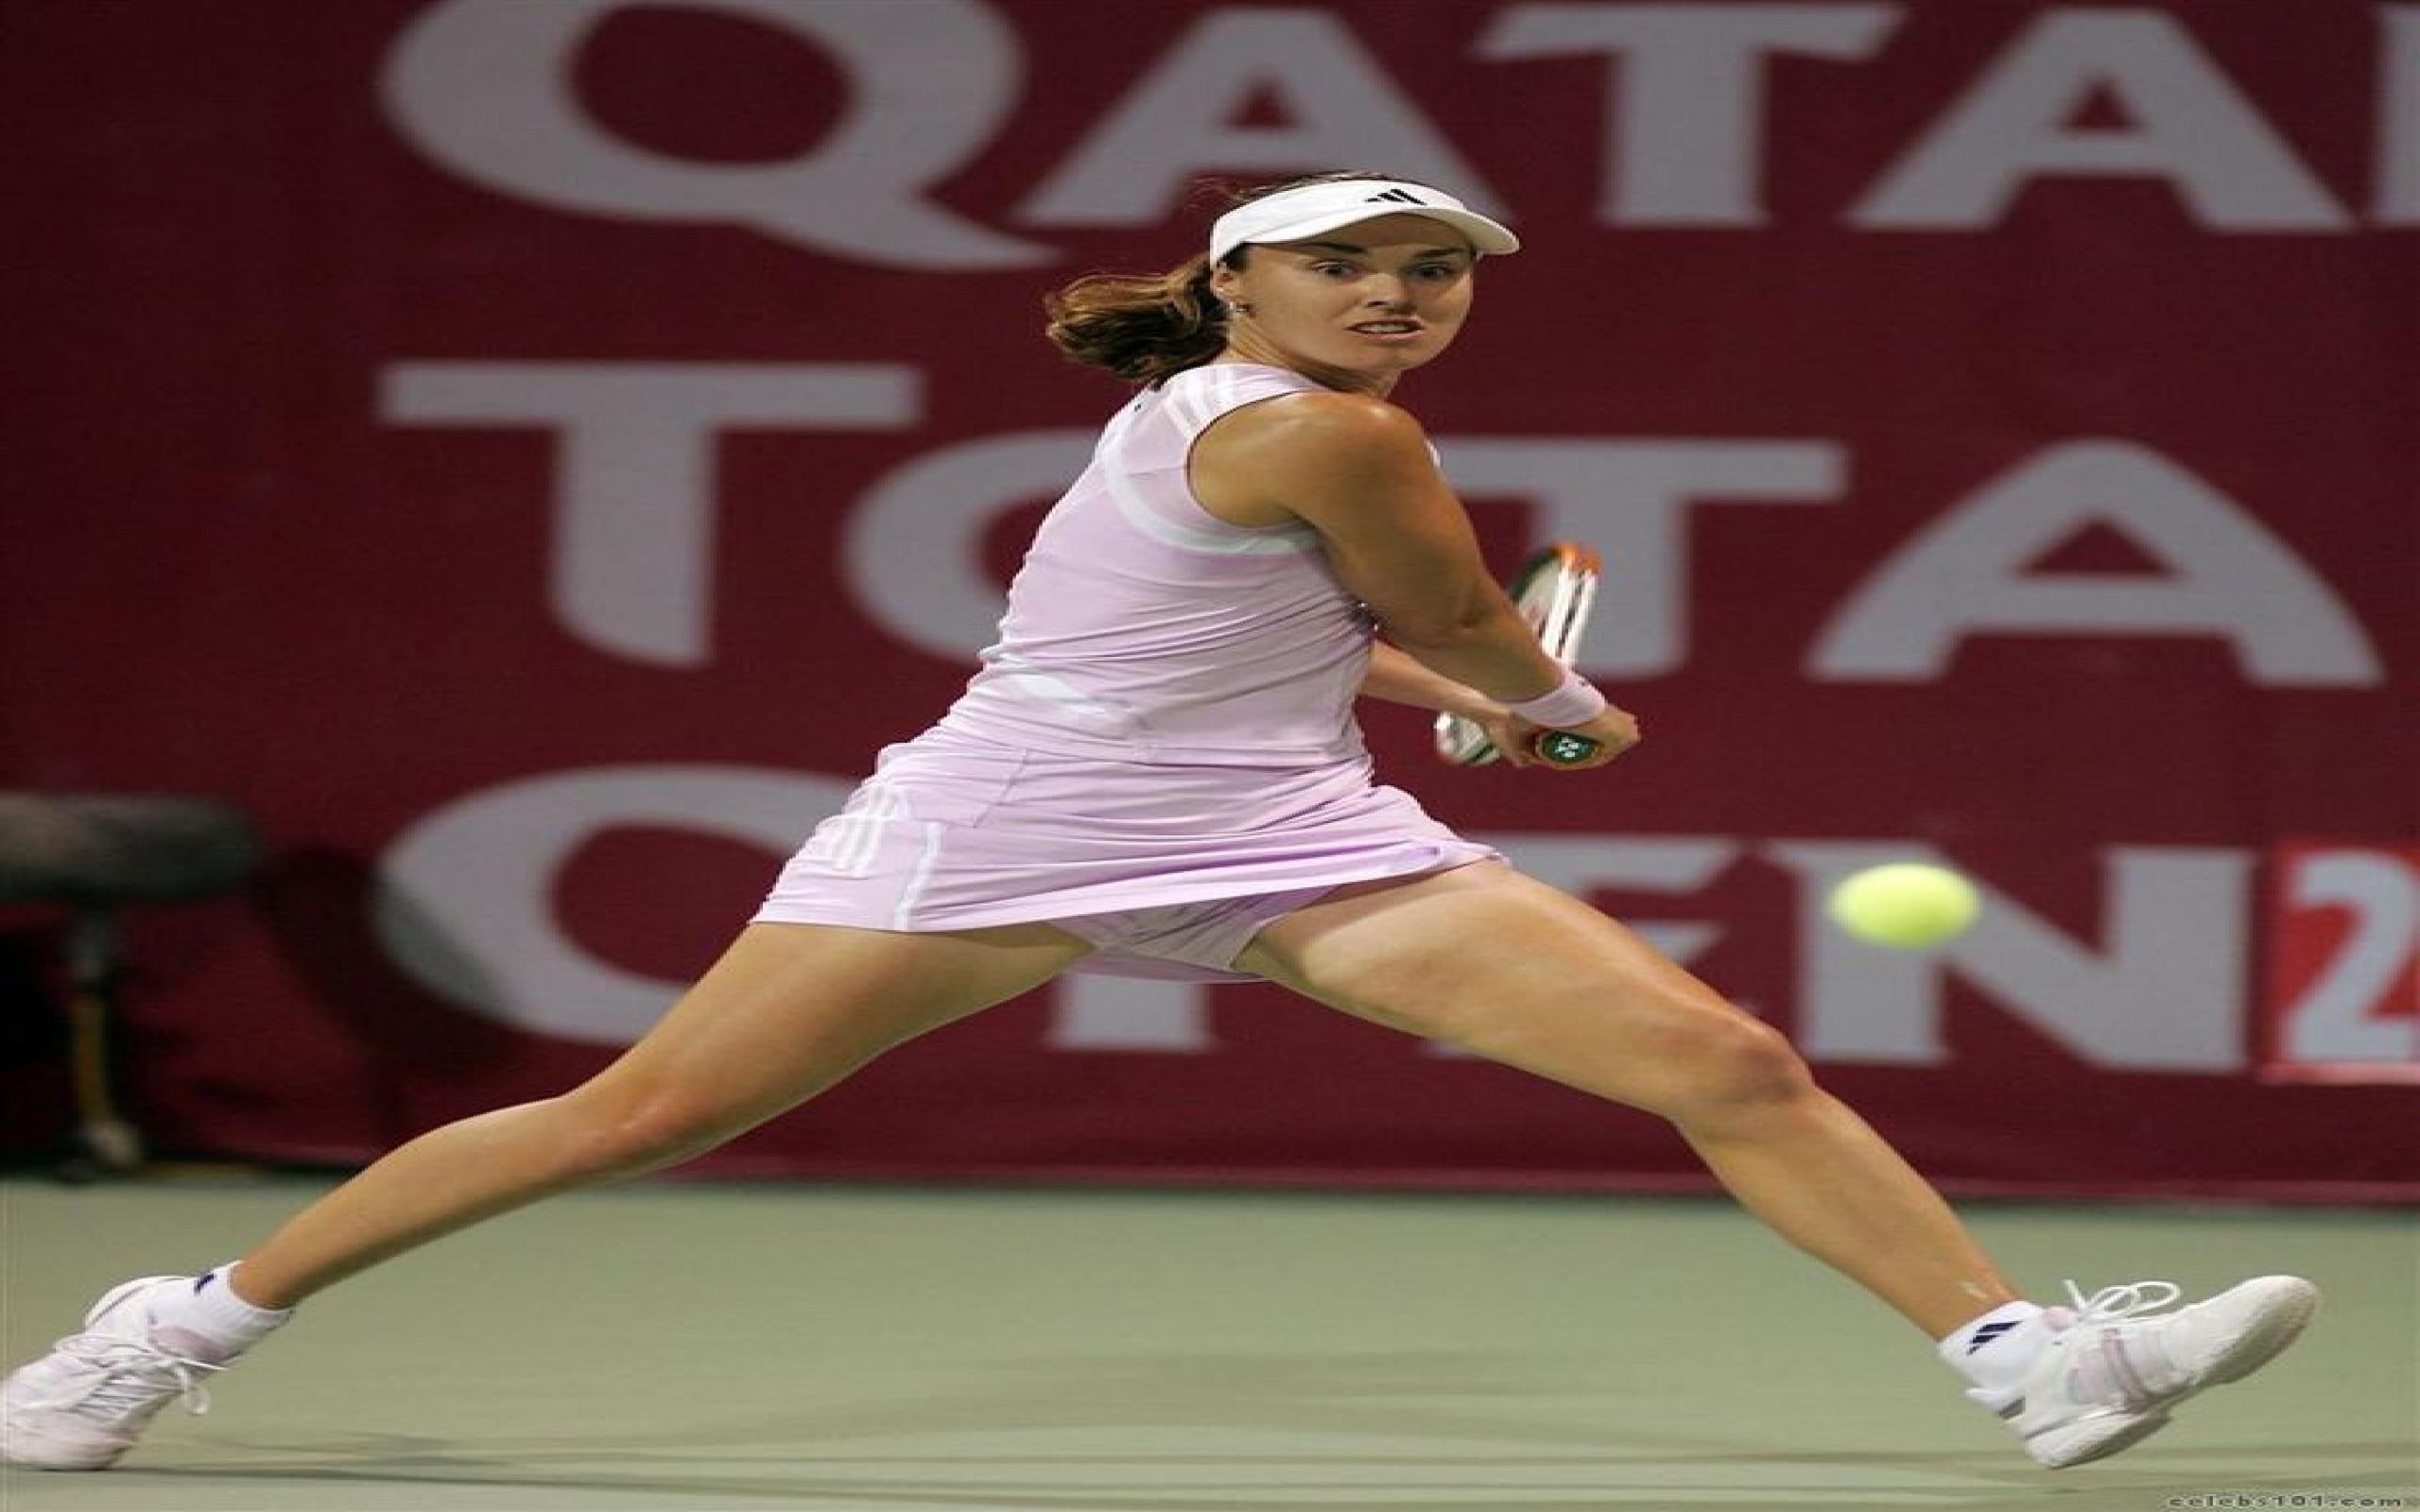 Martina Hingis Wallpapers